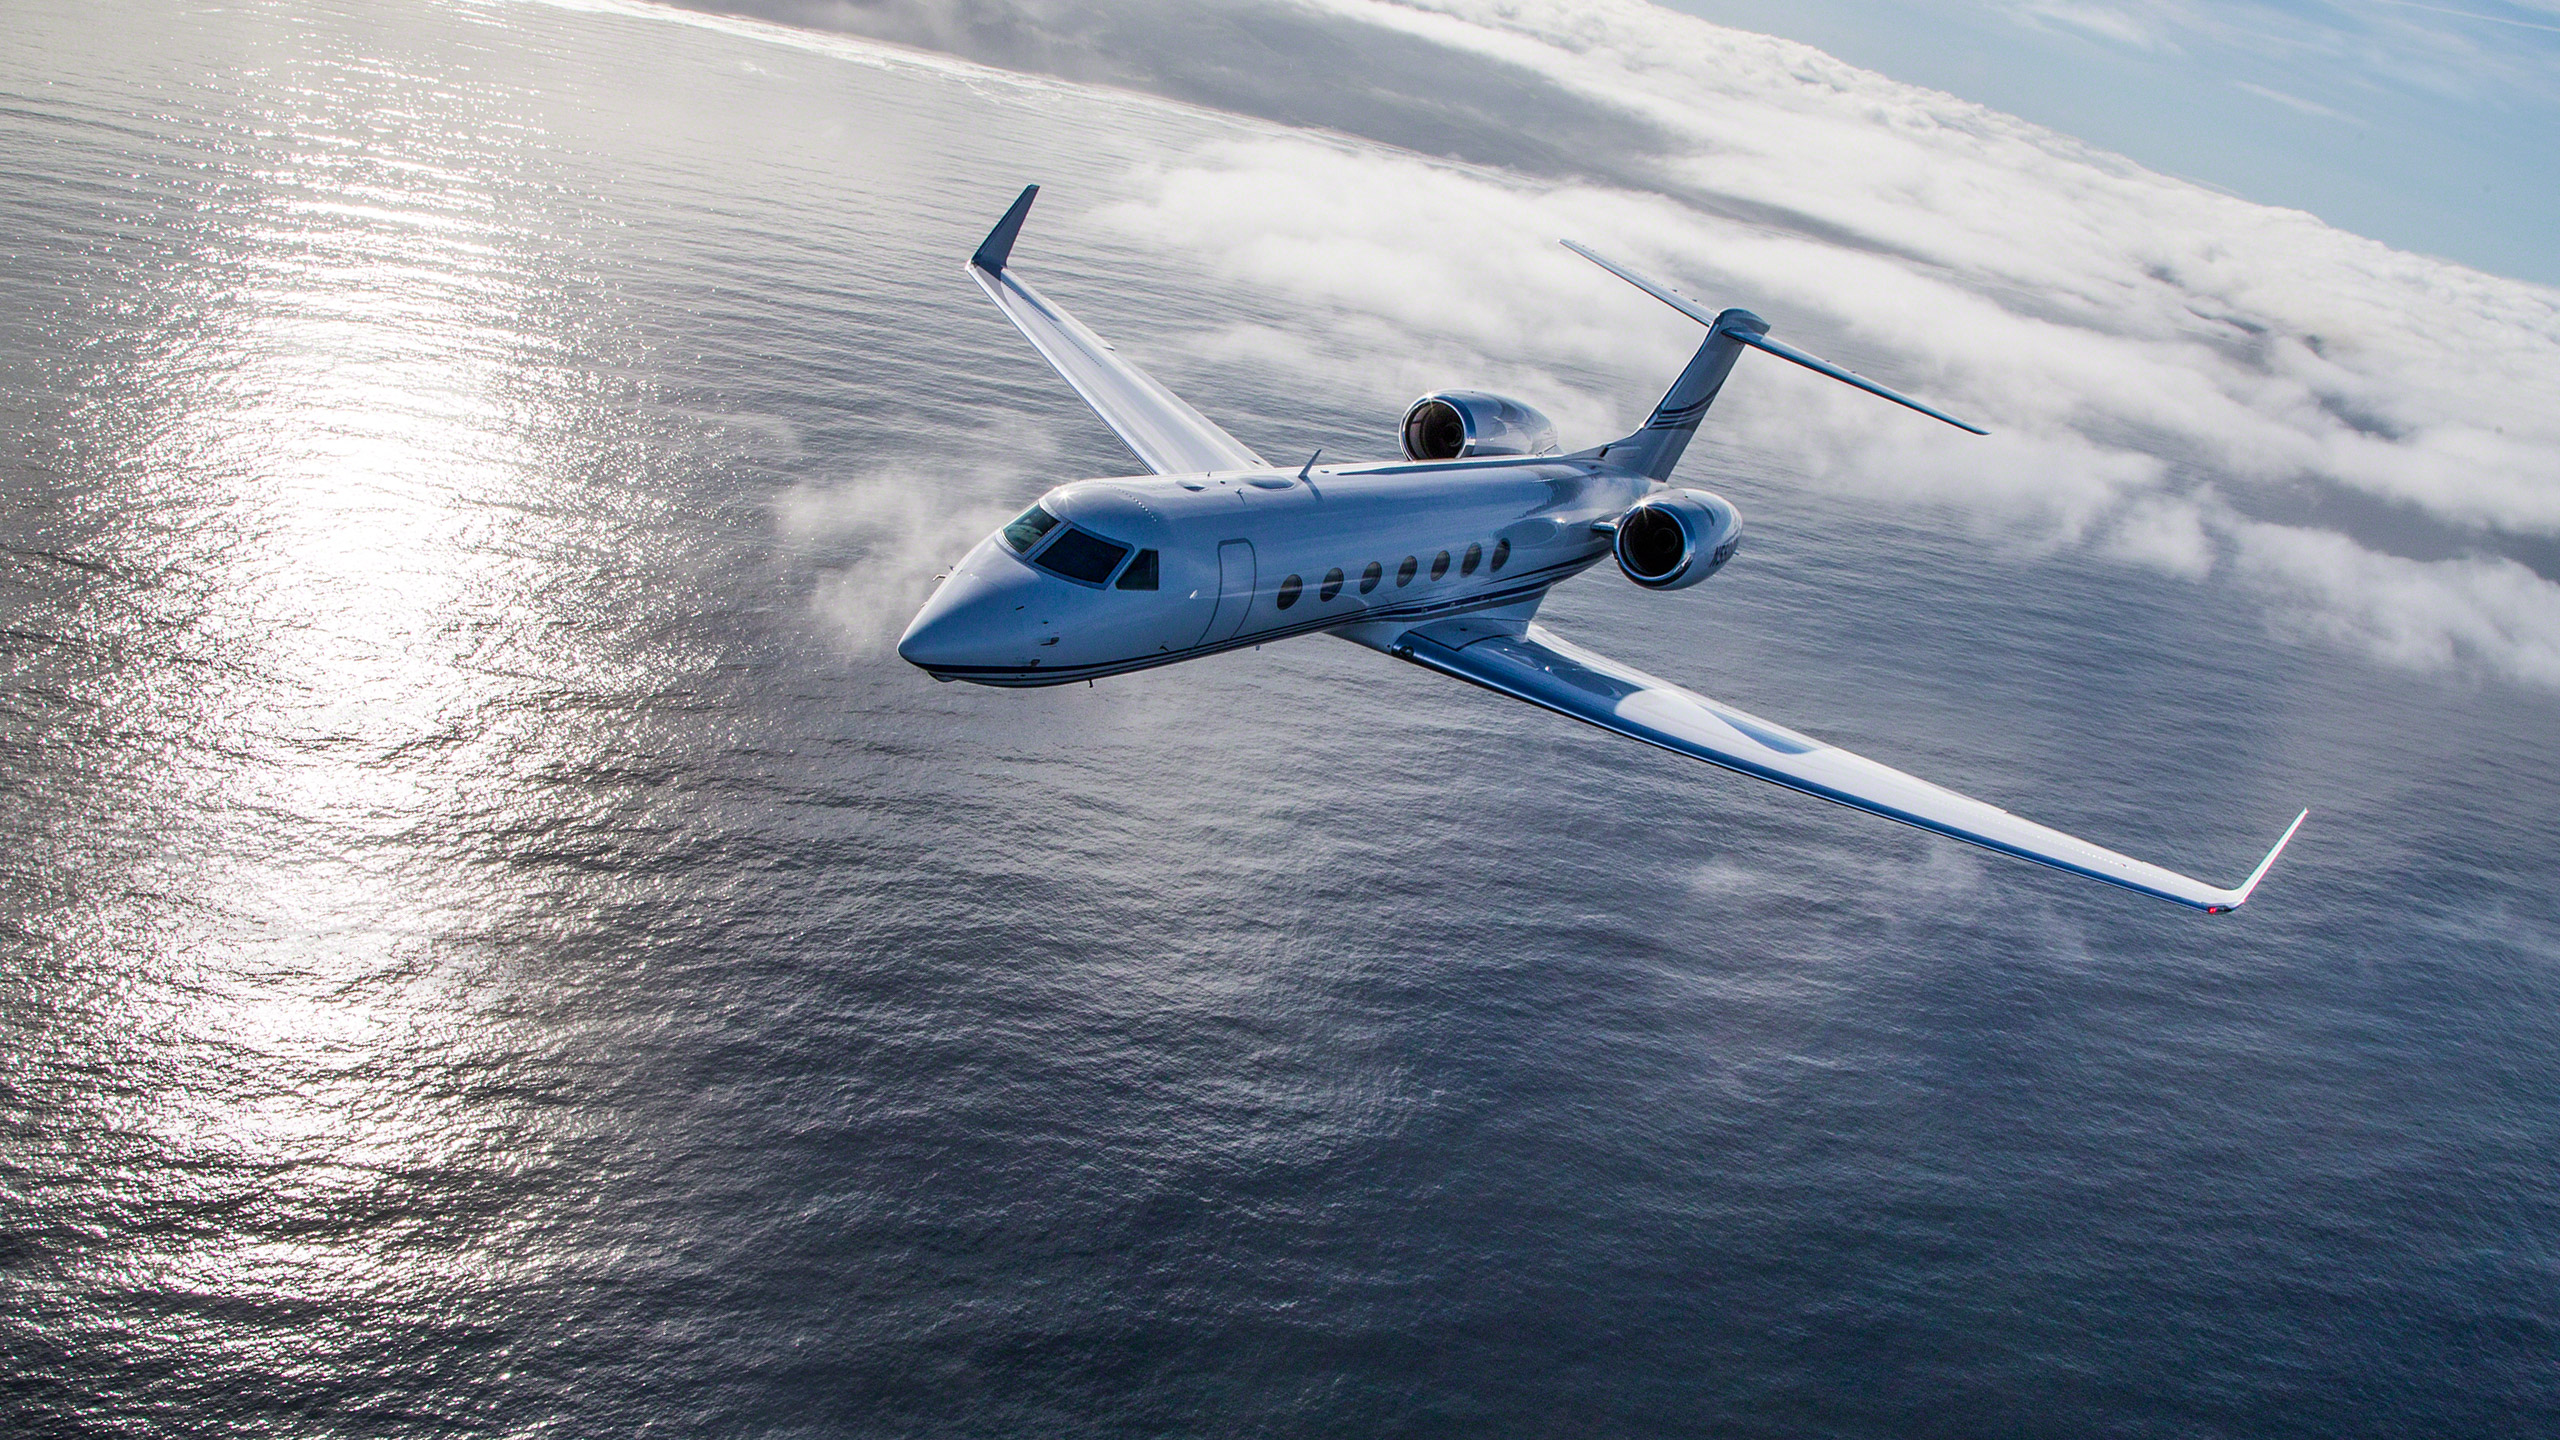 g550 . Gulfstream Aerospace - The World's Most Advanced Business Jet Aircraft